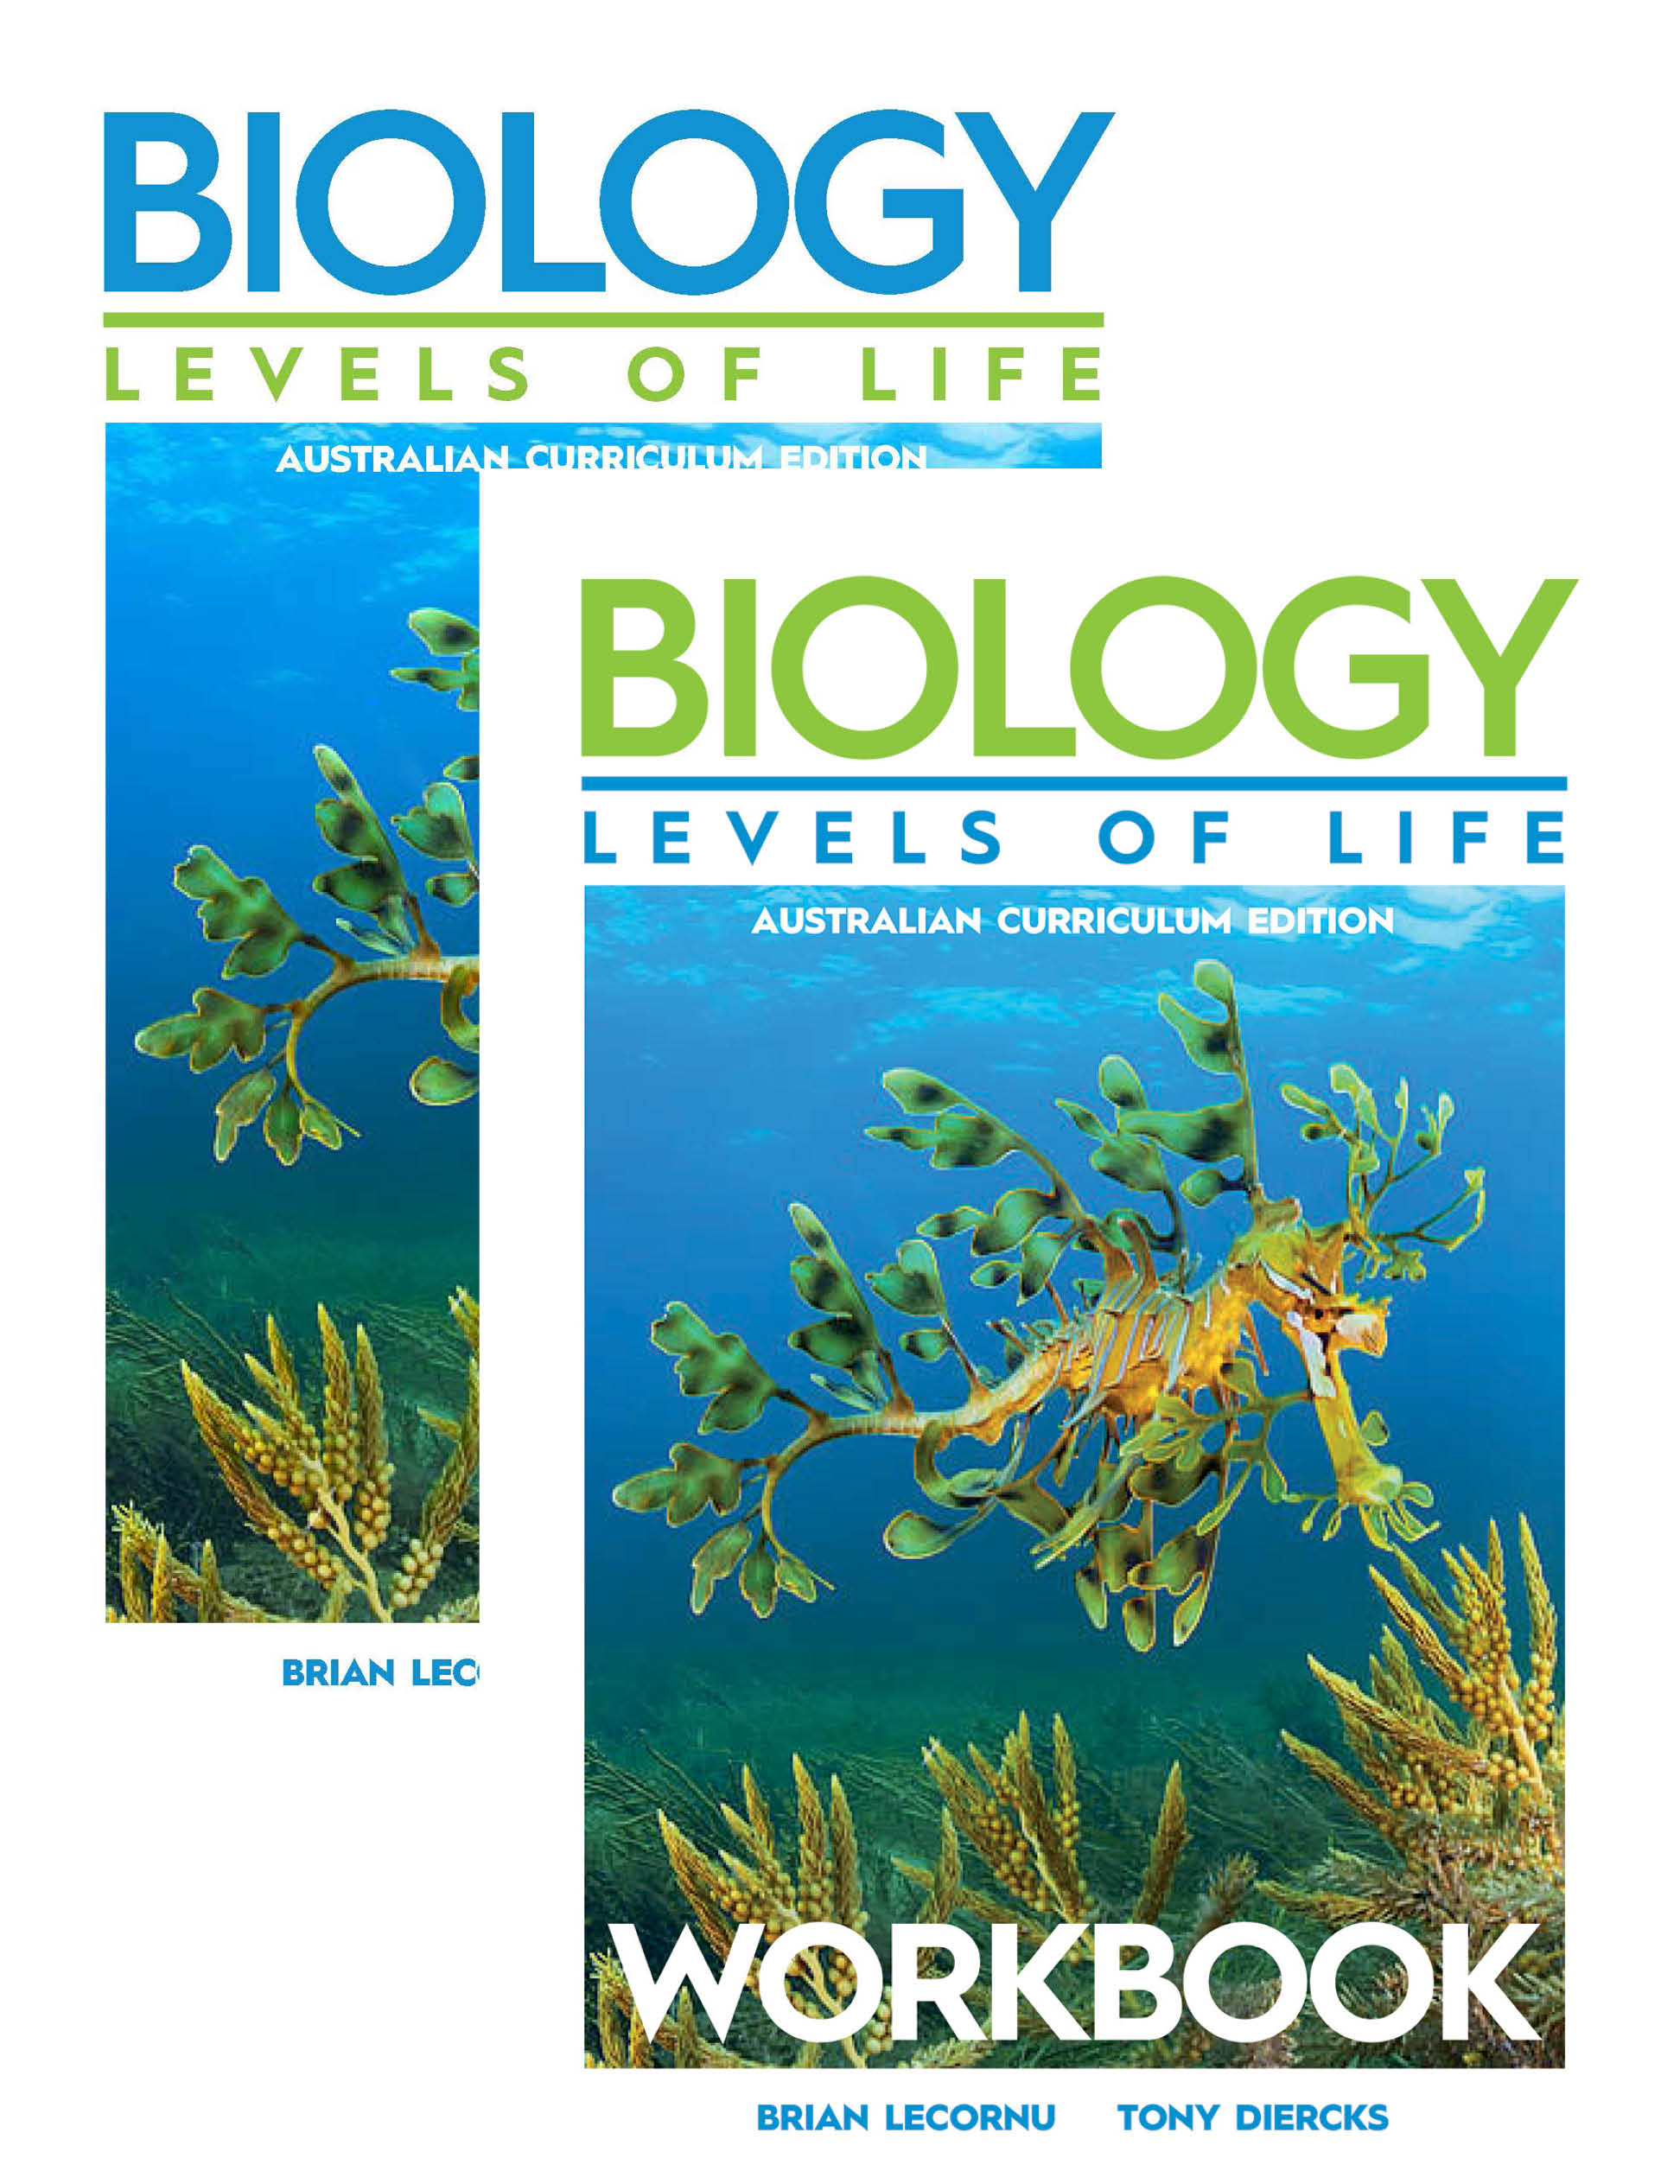 Biology Levels of Life Covers